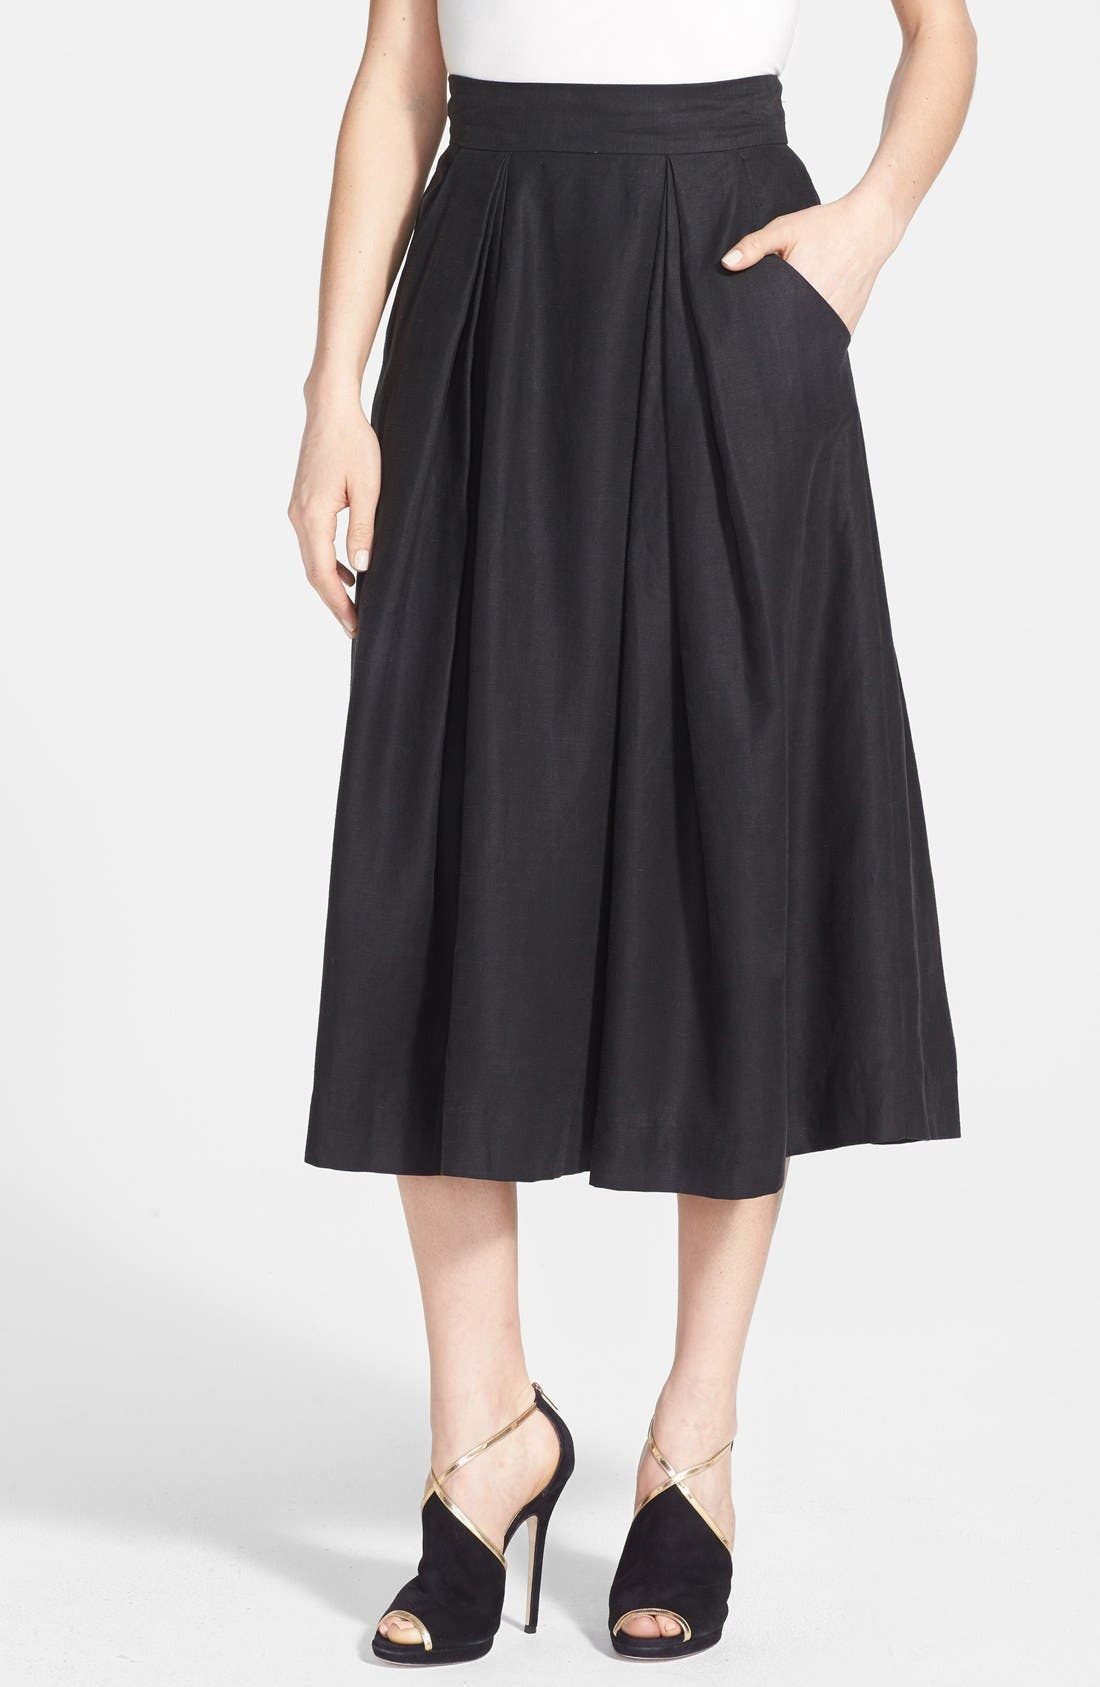 Alternate Image 1 Selected - Milly 'Katie' Full Midi Skirt